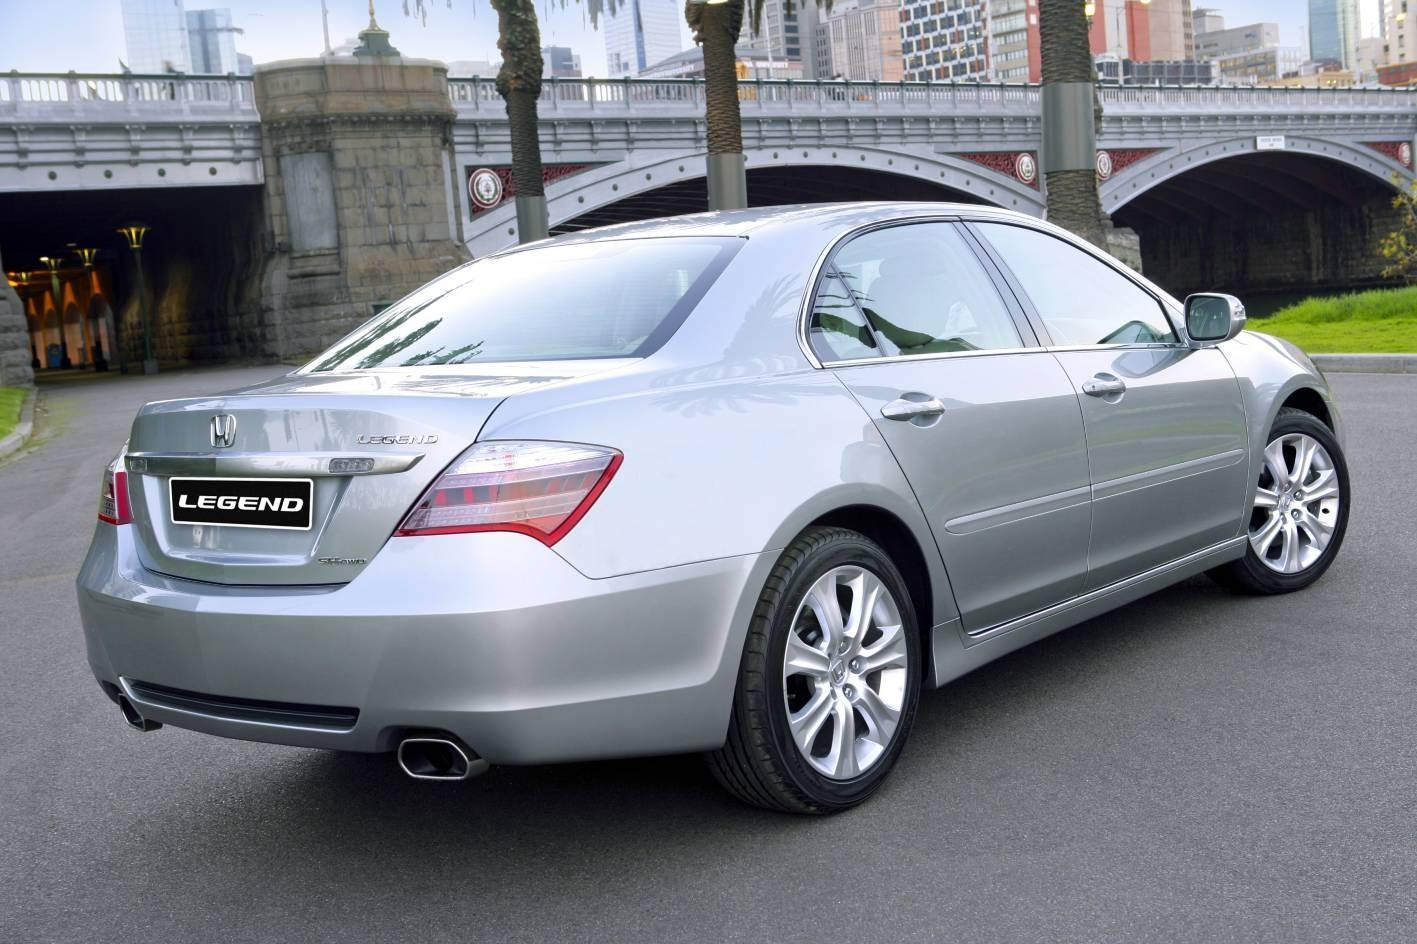 2010 Honda Legend #19